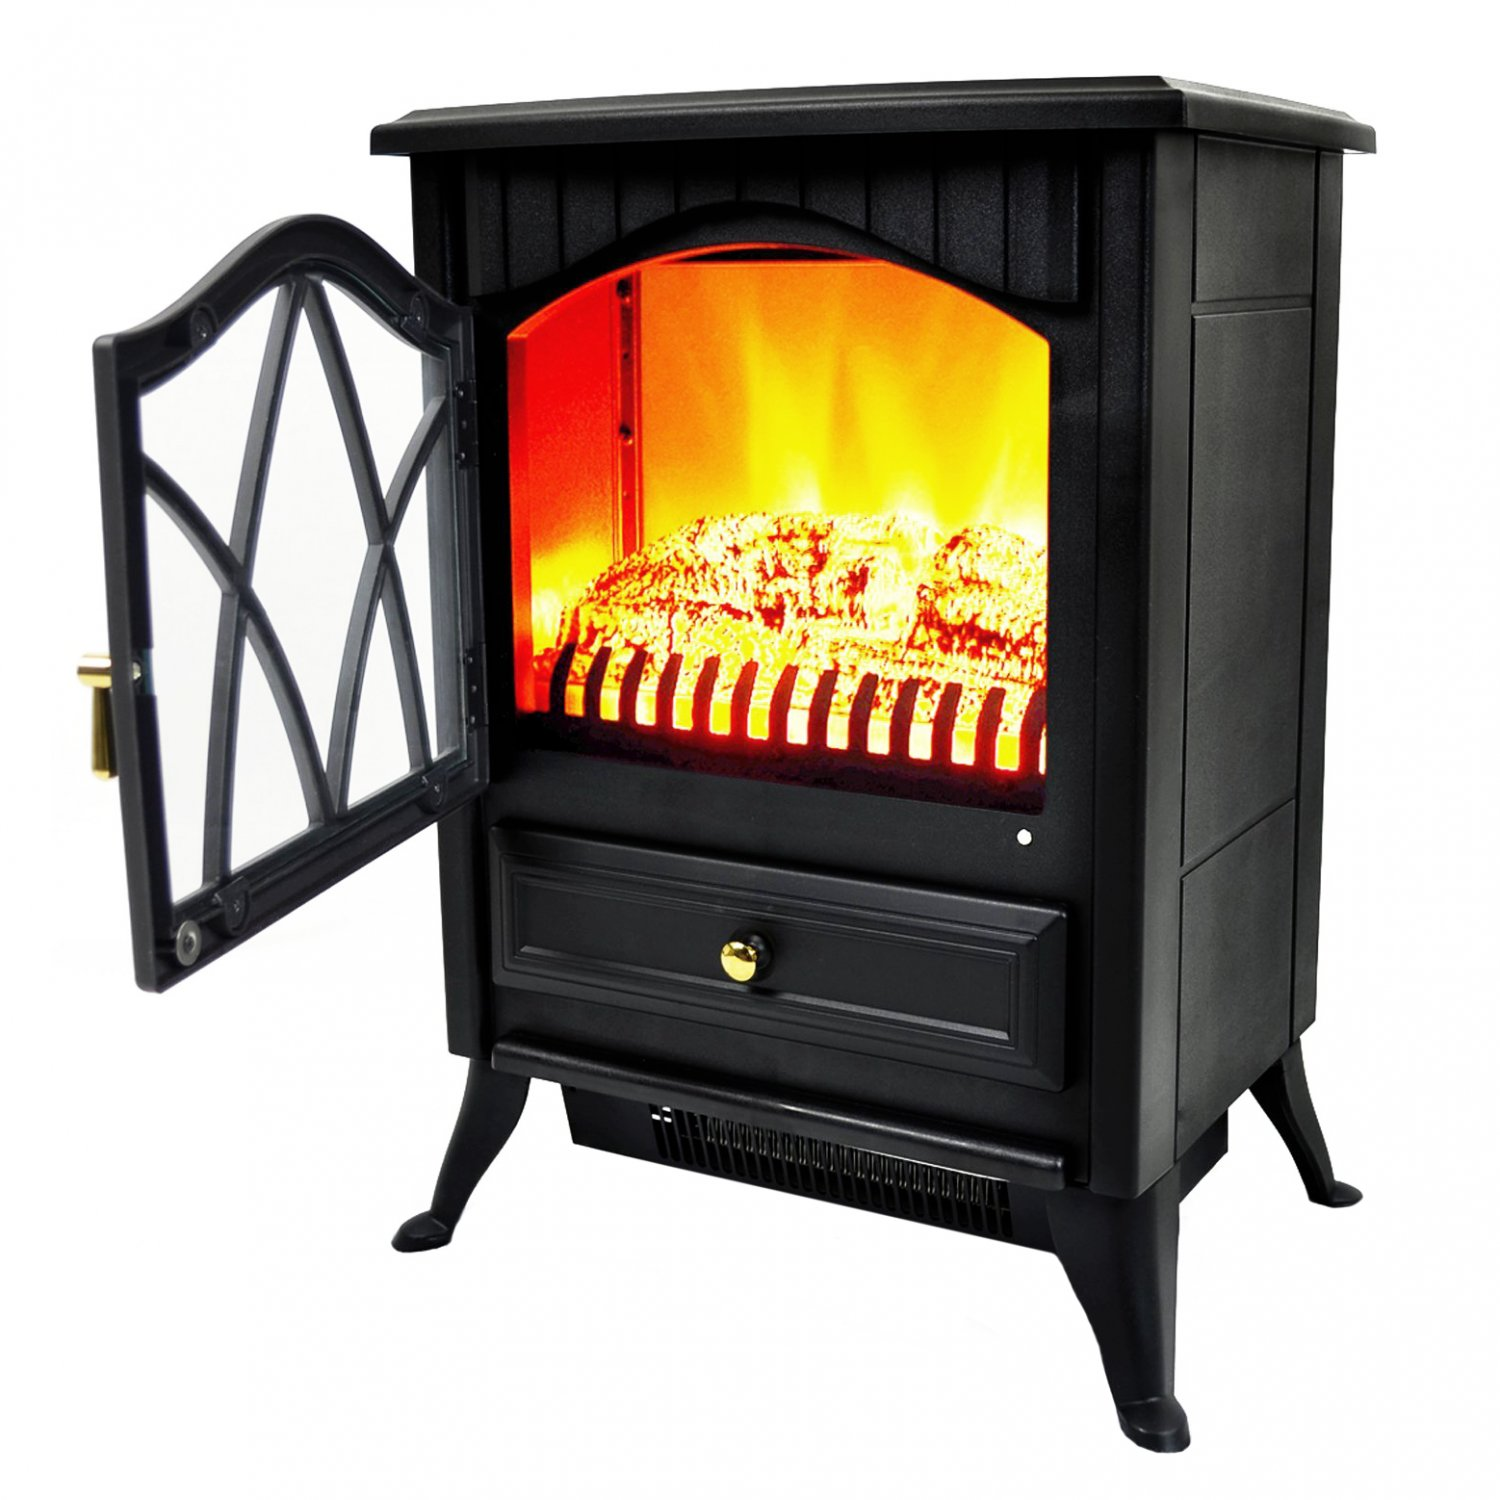 1850W Log Burner Flame Effect Electric Fireplace Stove Heater - £51.99 : Oypla - Stocking the ...